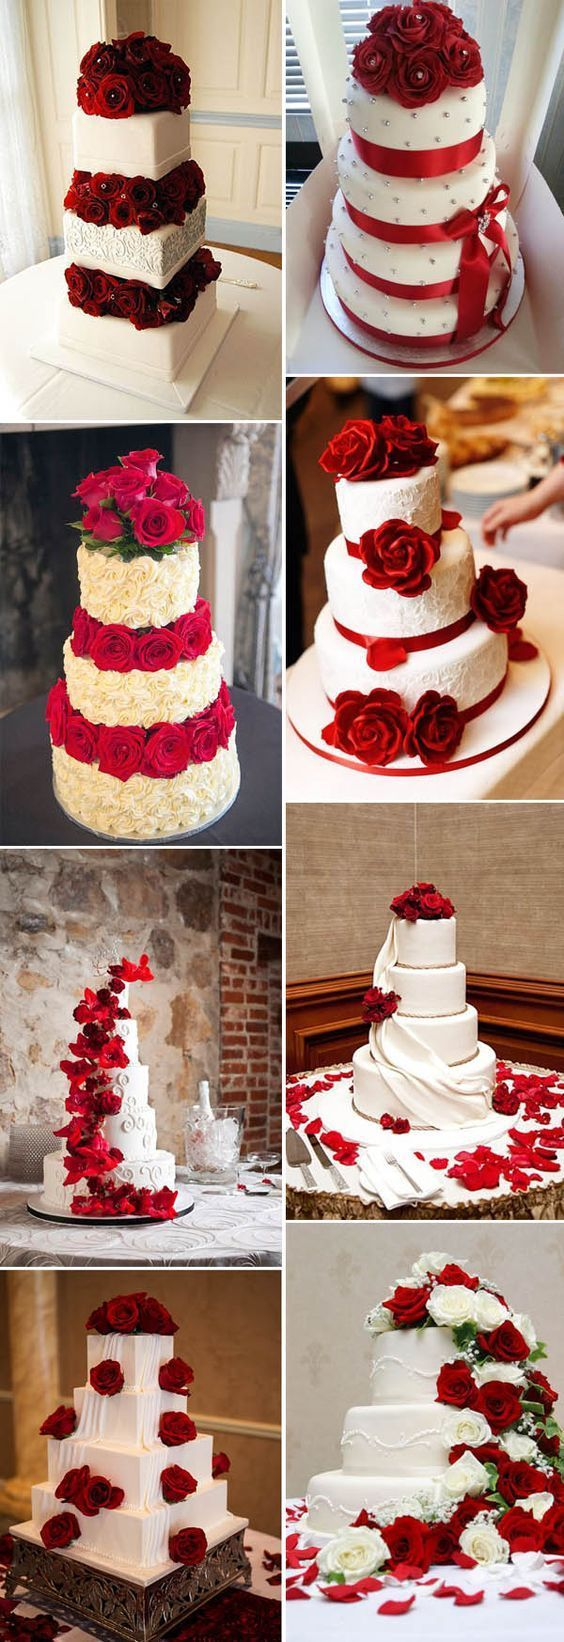 classic red and white wedding cakes